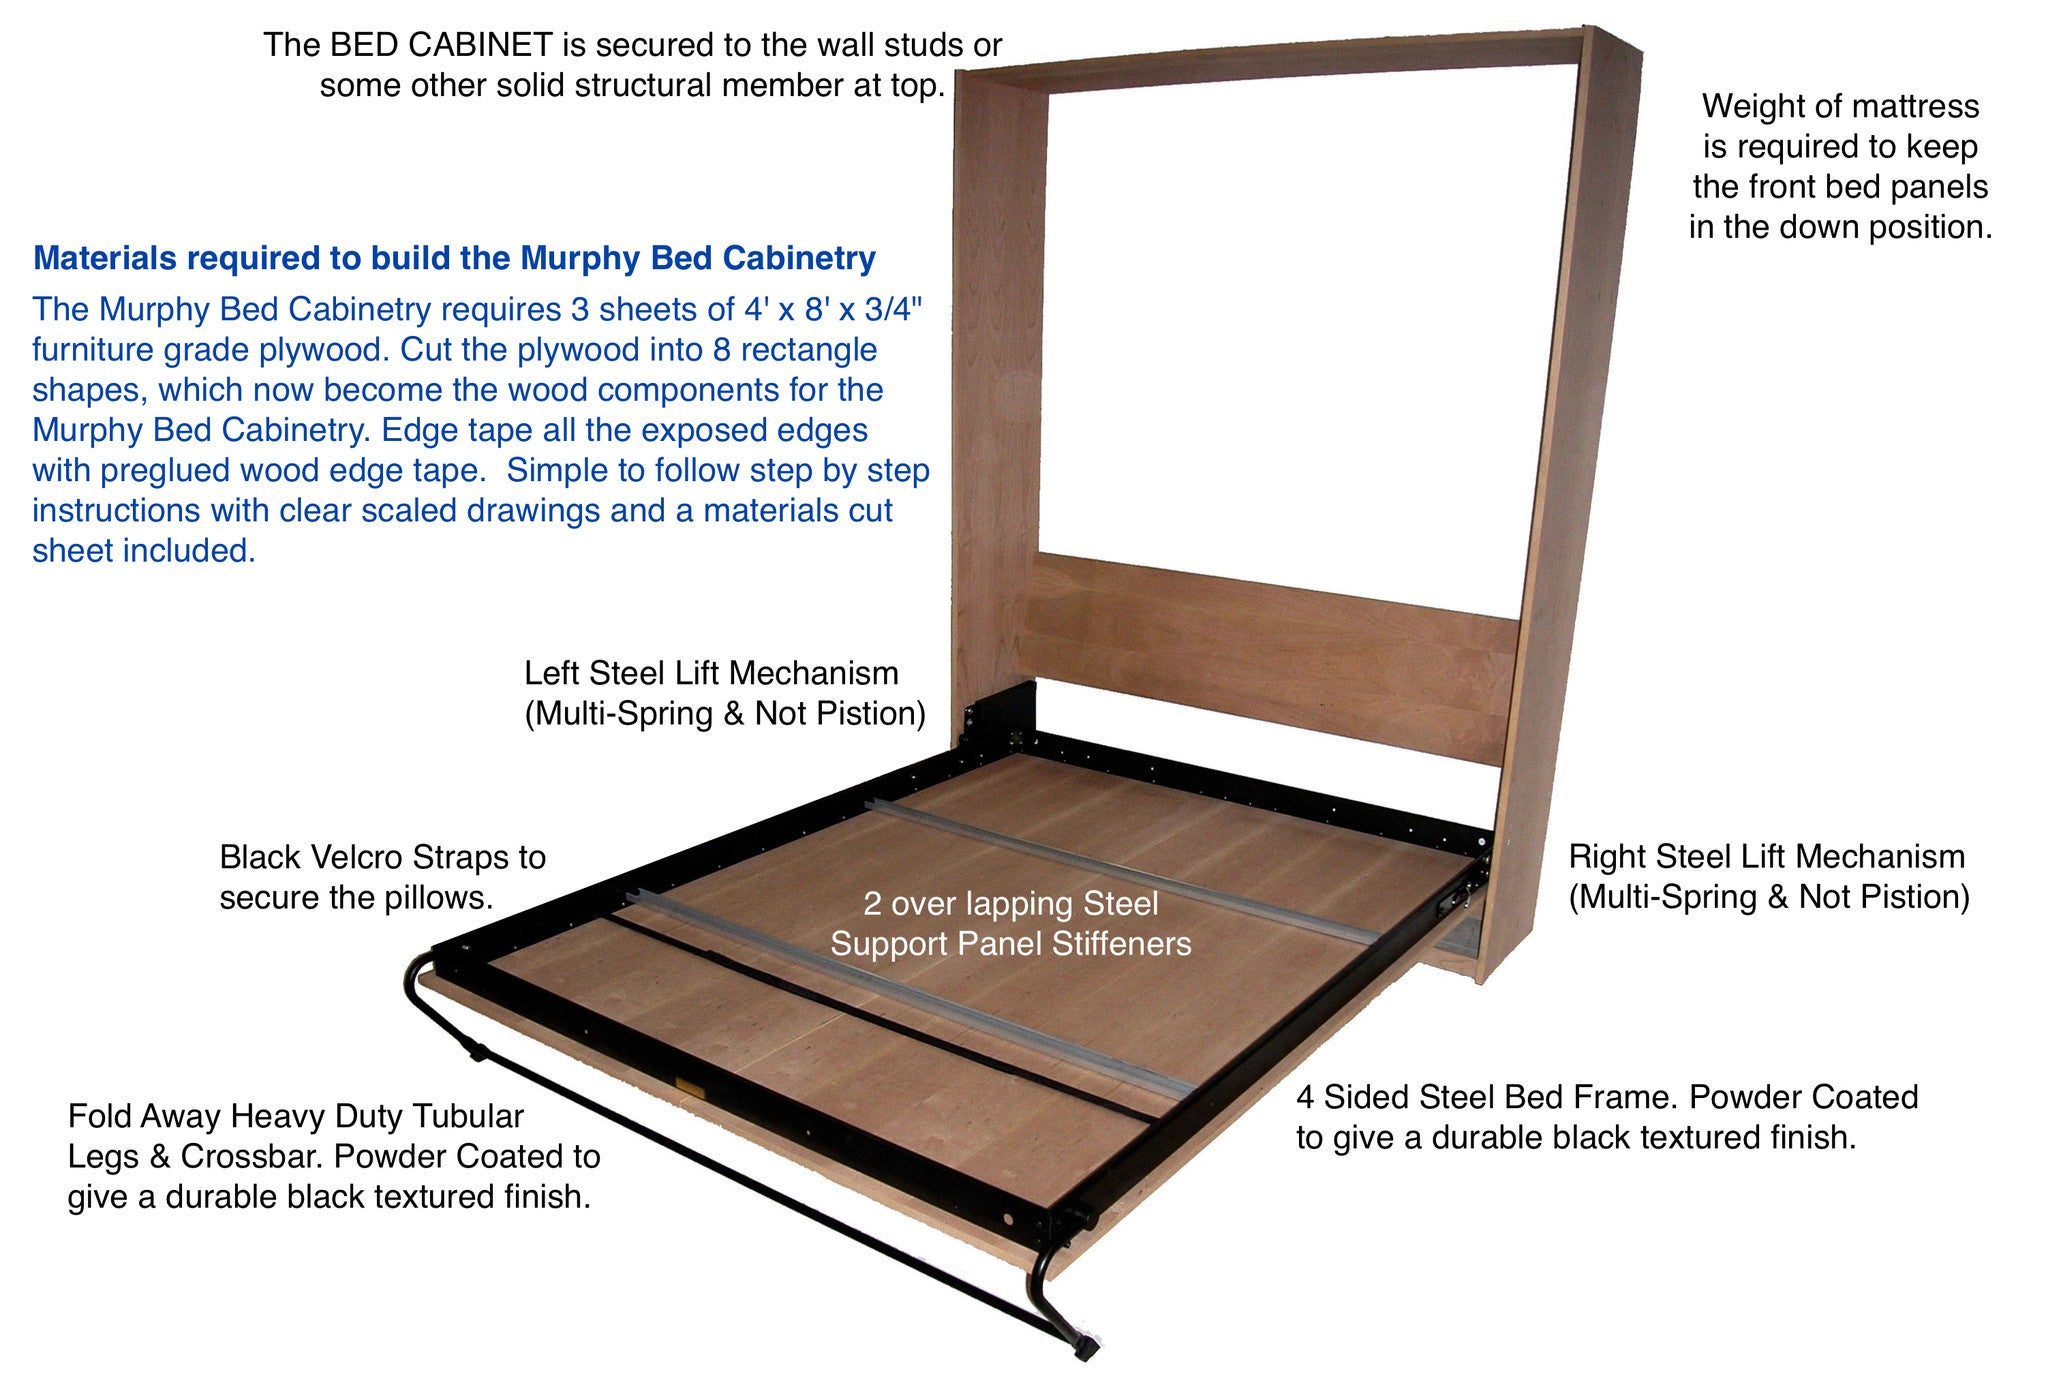 upright supreme hardware - Murphy Bed Frame